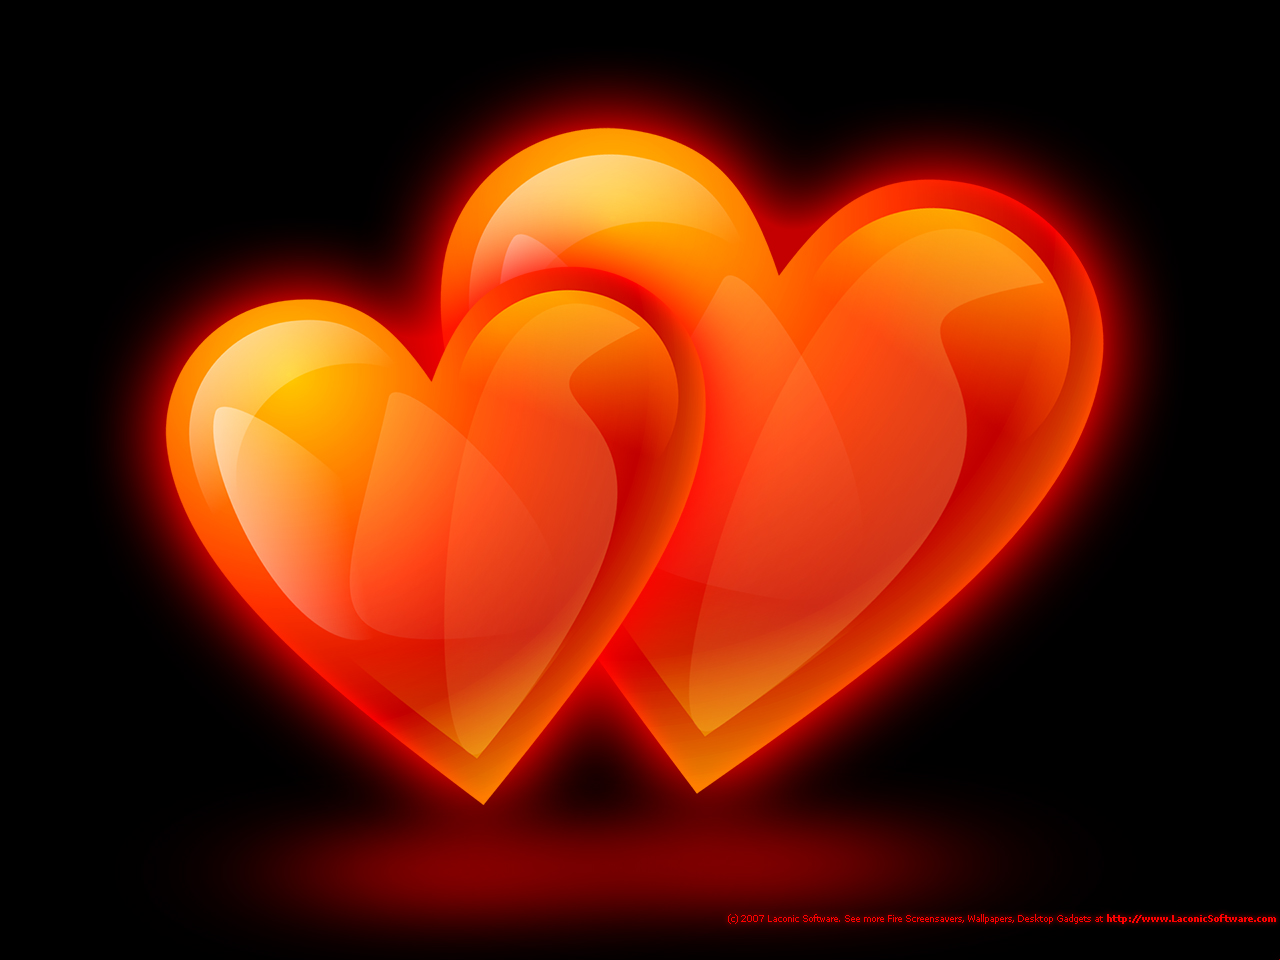 http://2.bp.blogspot.com/-uJ-EPsF2zx4/UNcQVHCYHGI/AAAAAAAAAdA/H4Mhkd9JRgQ/s1600/couple-of-hearts-of-flame-wallpaper-1280x960.jpg